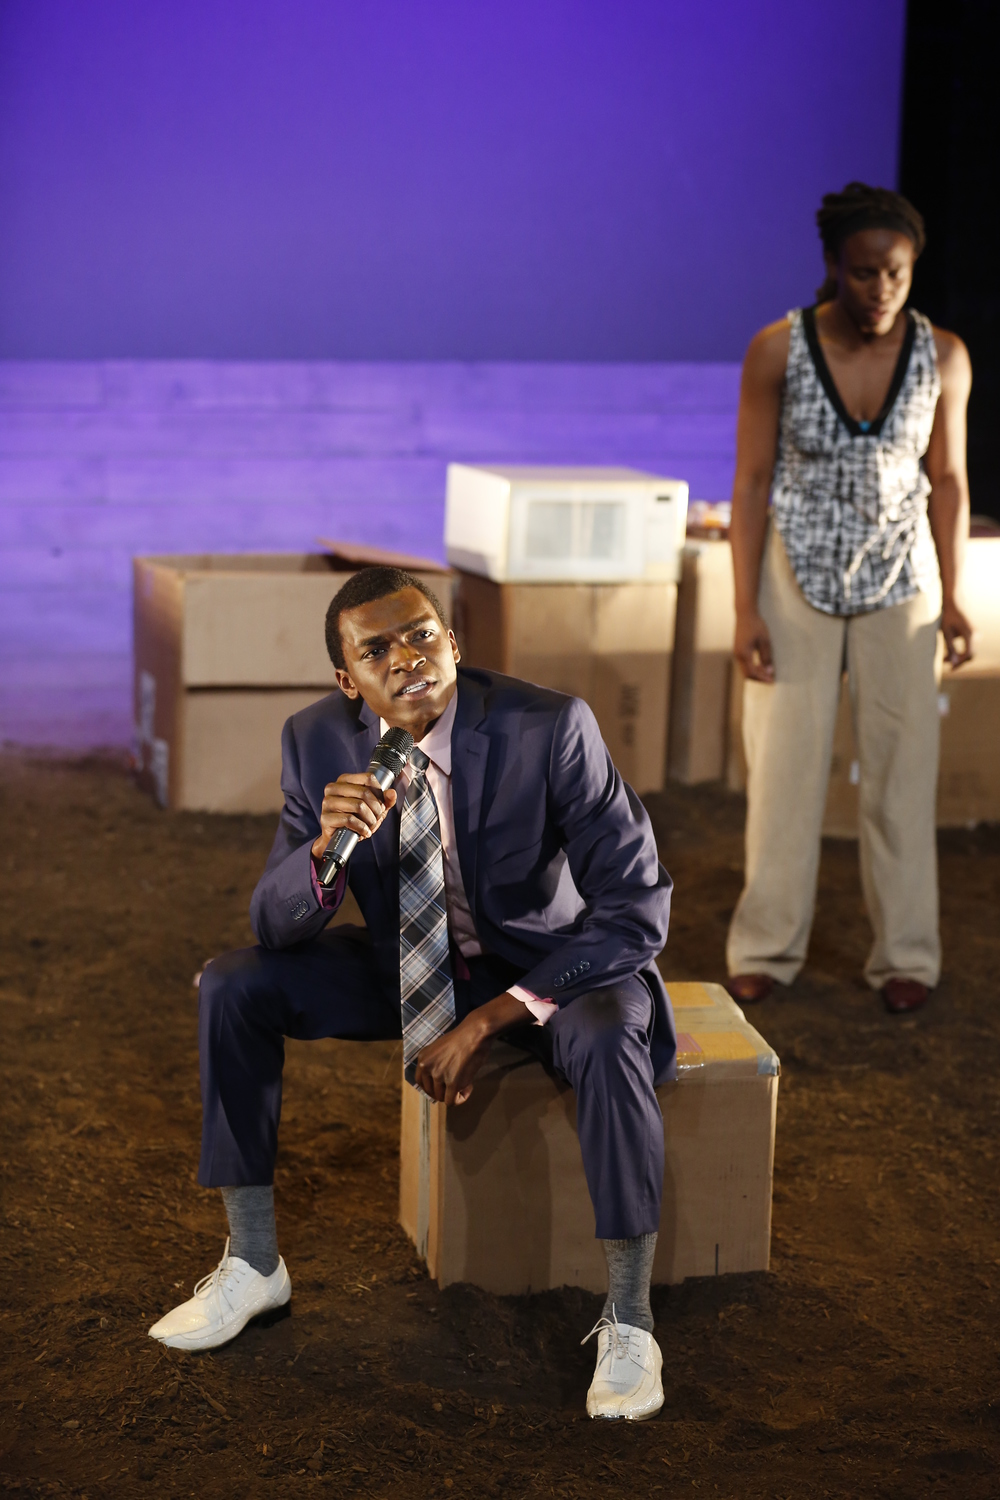 Kenard Jackson - Production Photo #1.JPG